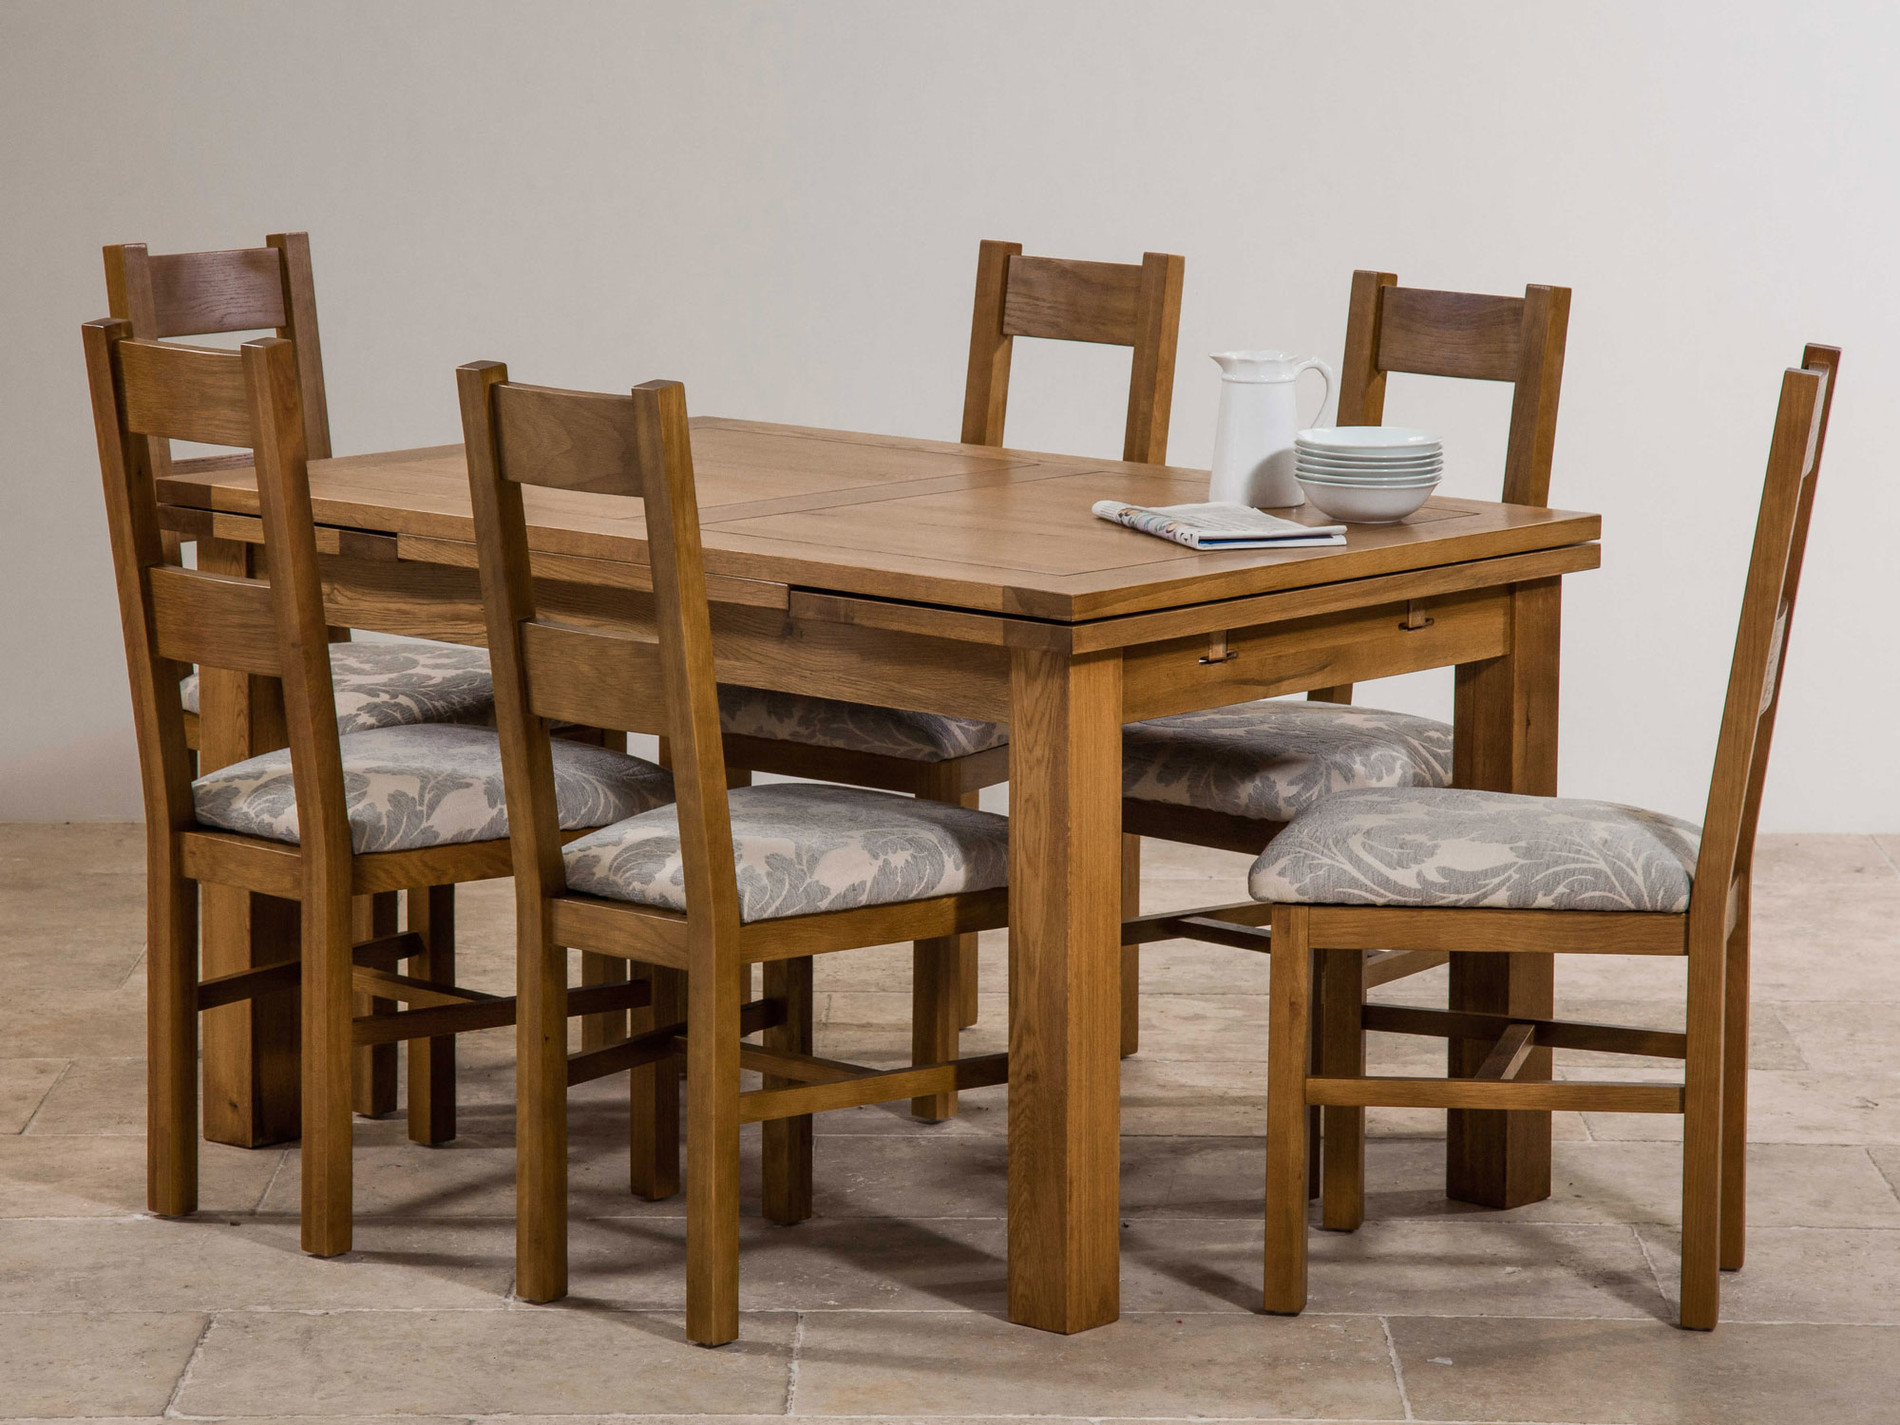 Rustic Solid Oak Dining Set 4ft Extending Dining Table with 6 Farmhouse and